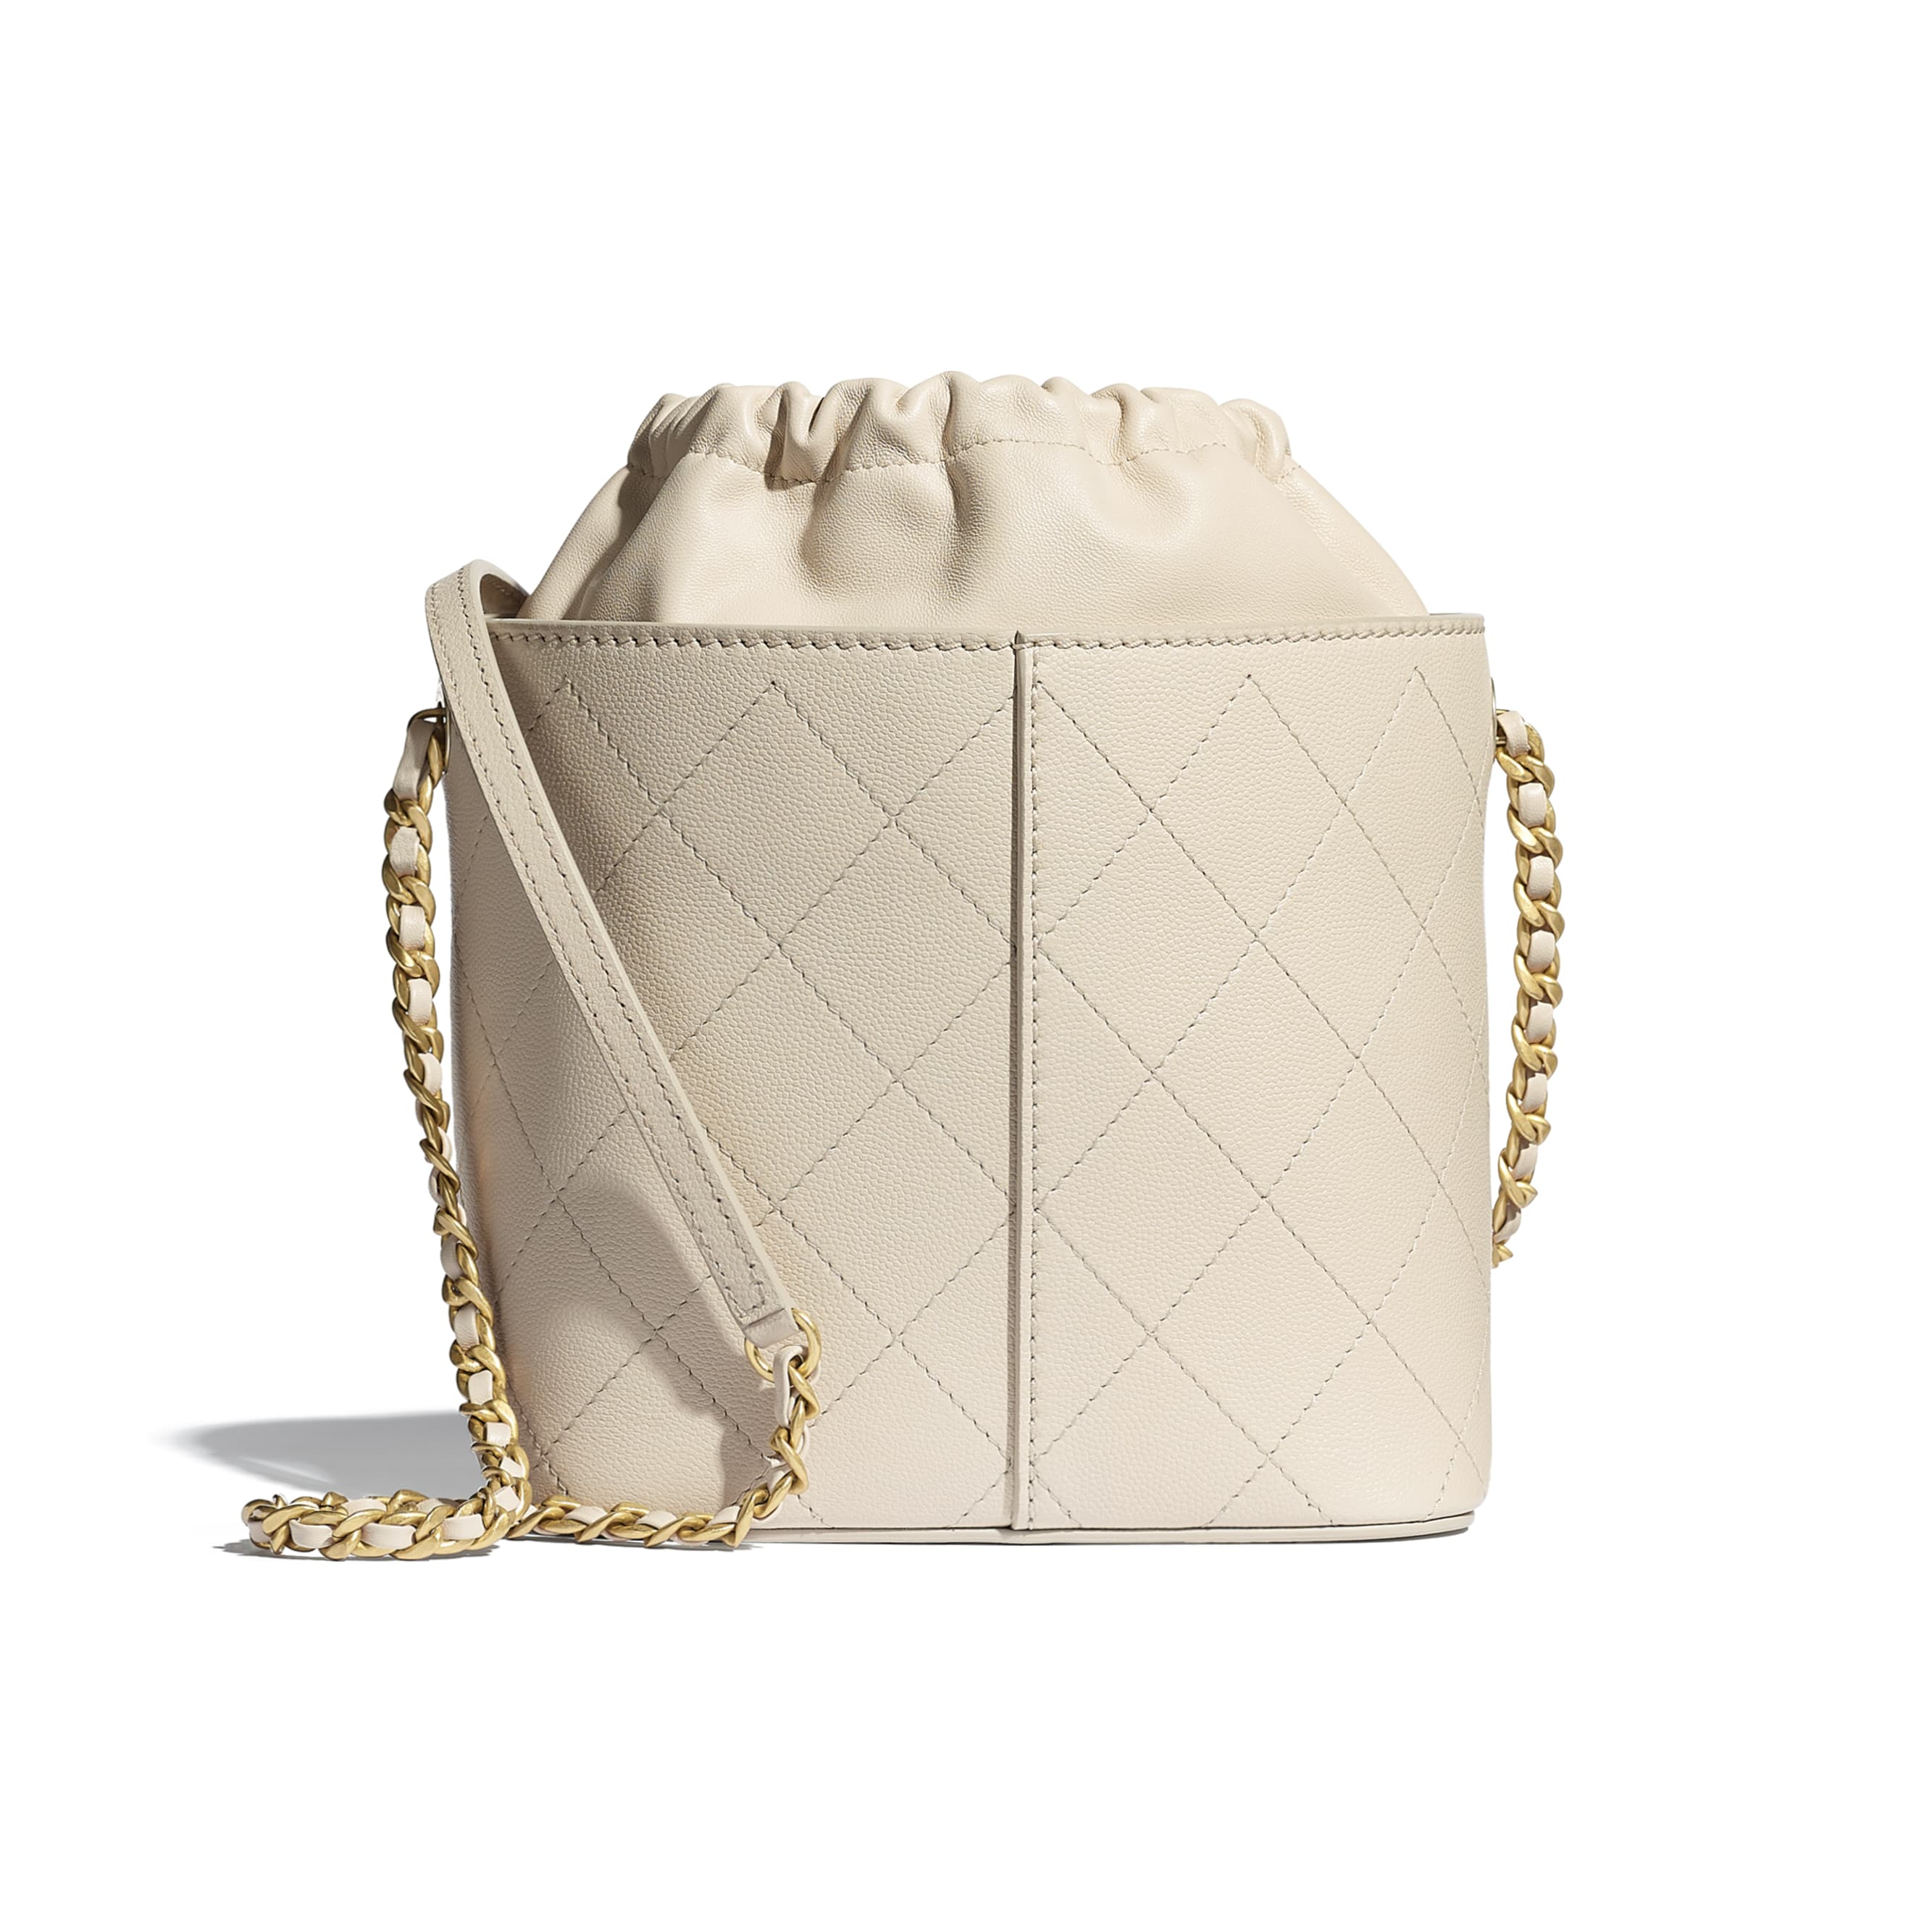 Drawstring Bag - Beige - Grained Lambskin, Smooth Lambskin & Gold-Tone Metal - CHANEL - Alternative view - see standard sized version